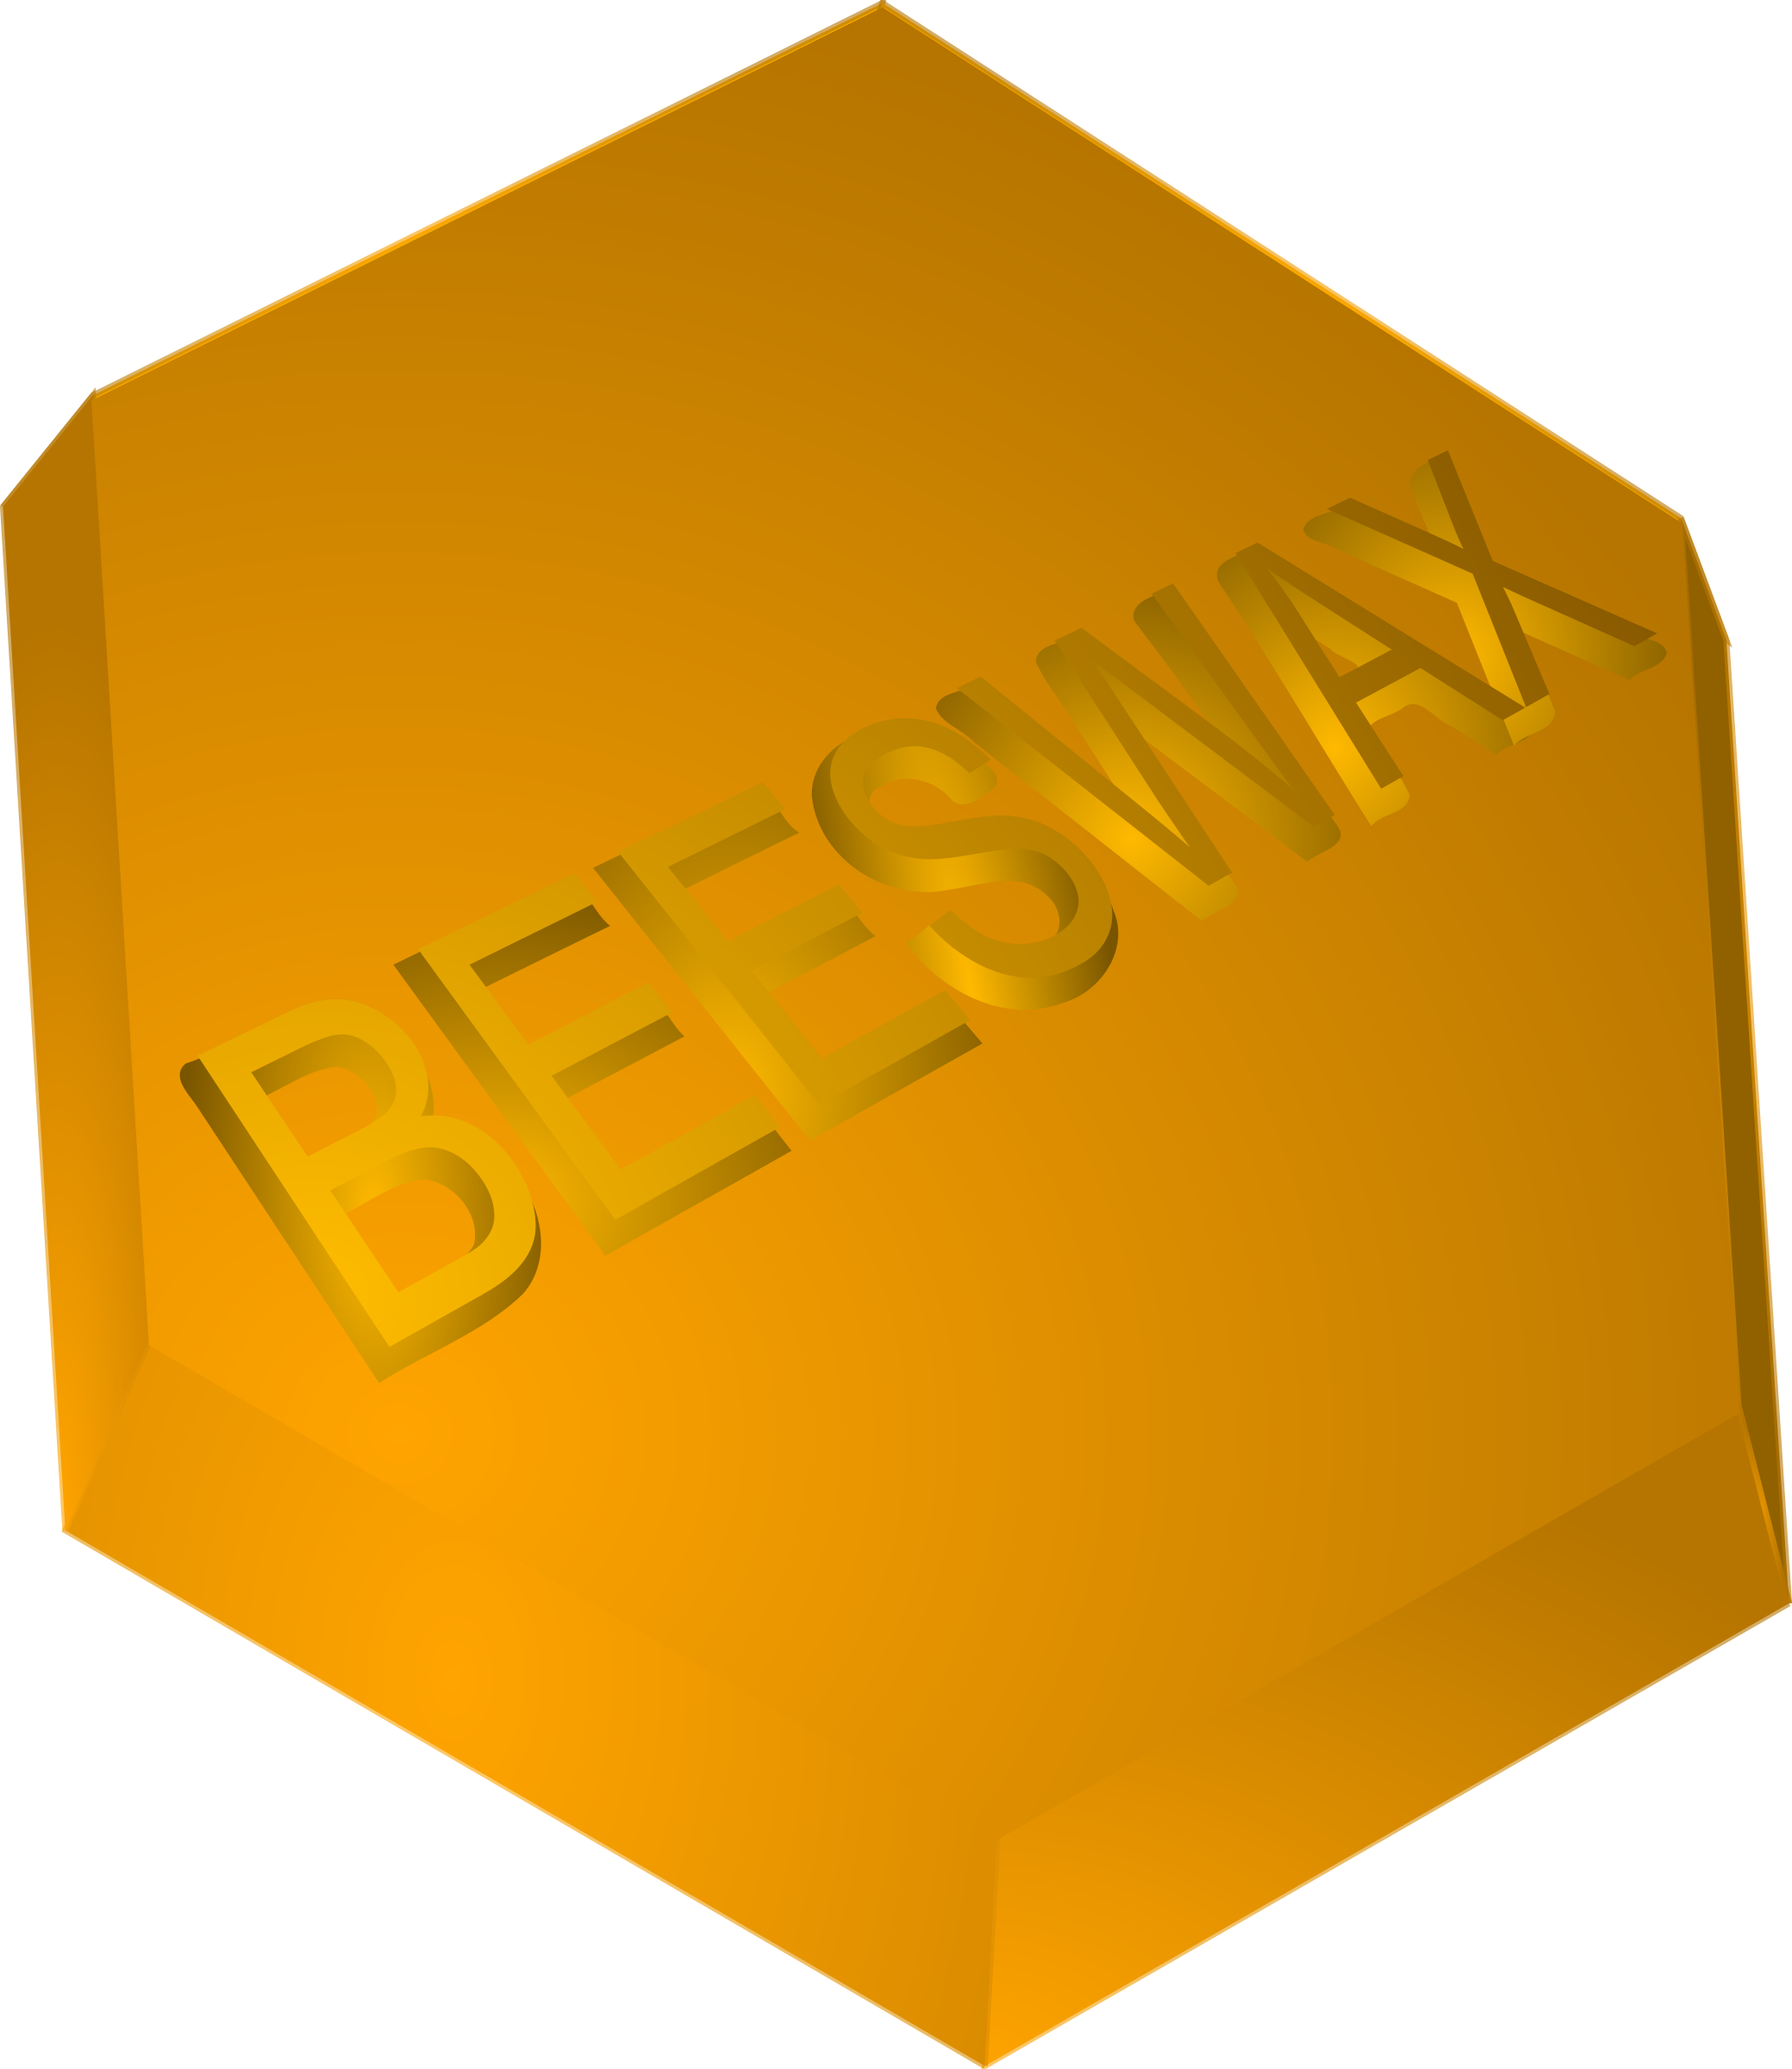 Beeswax Block by jesseakc